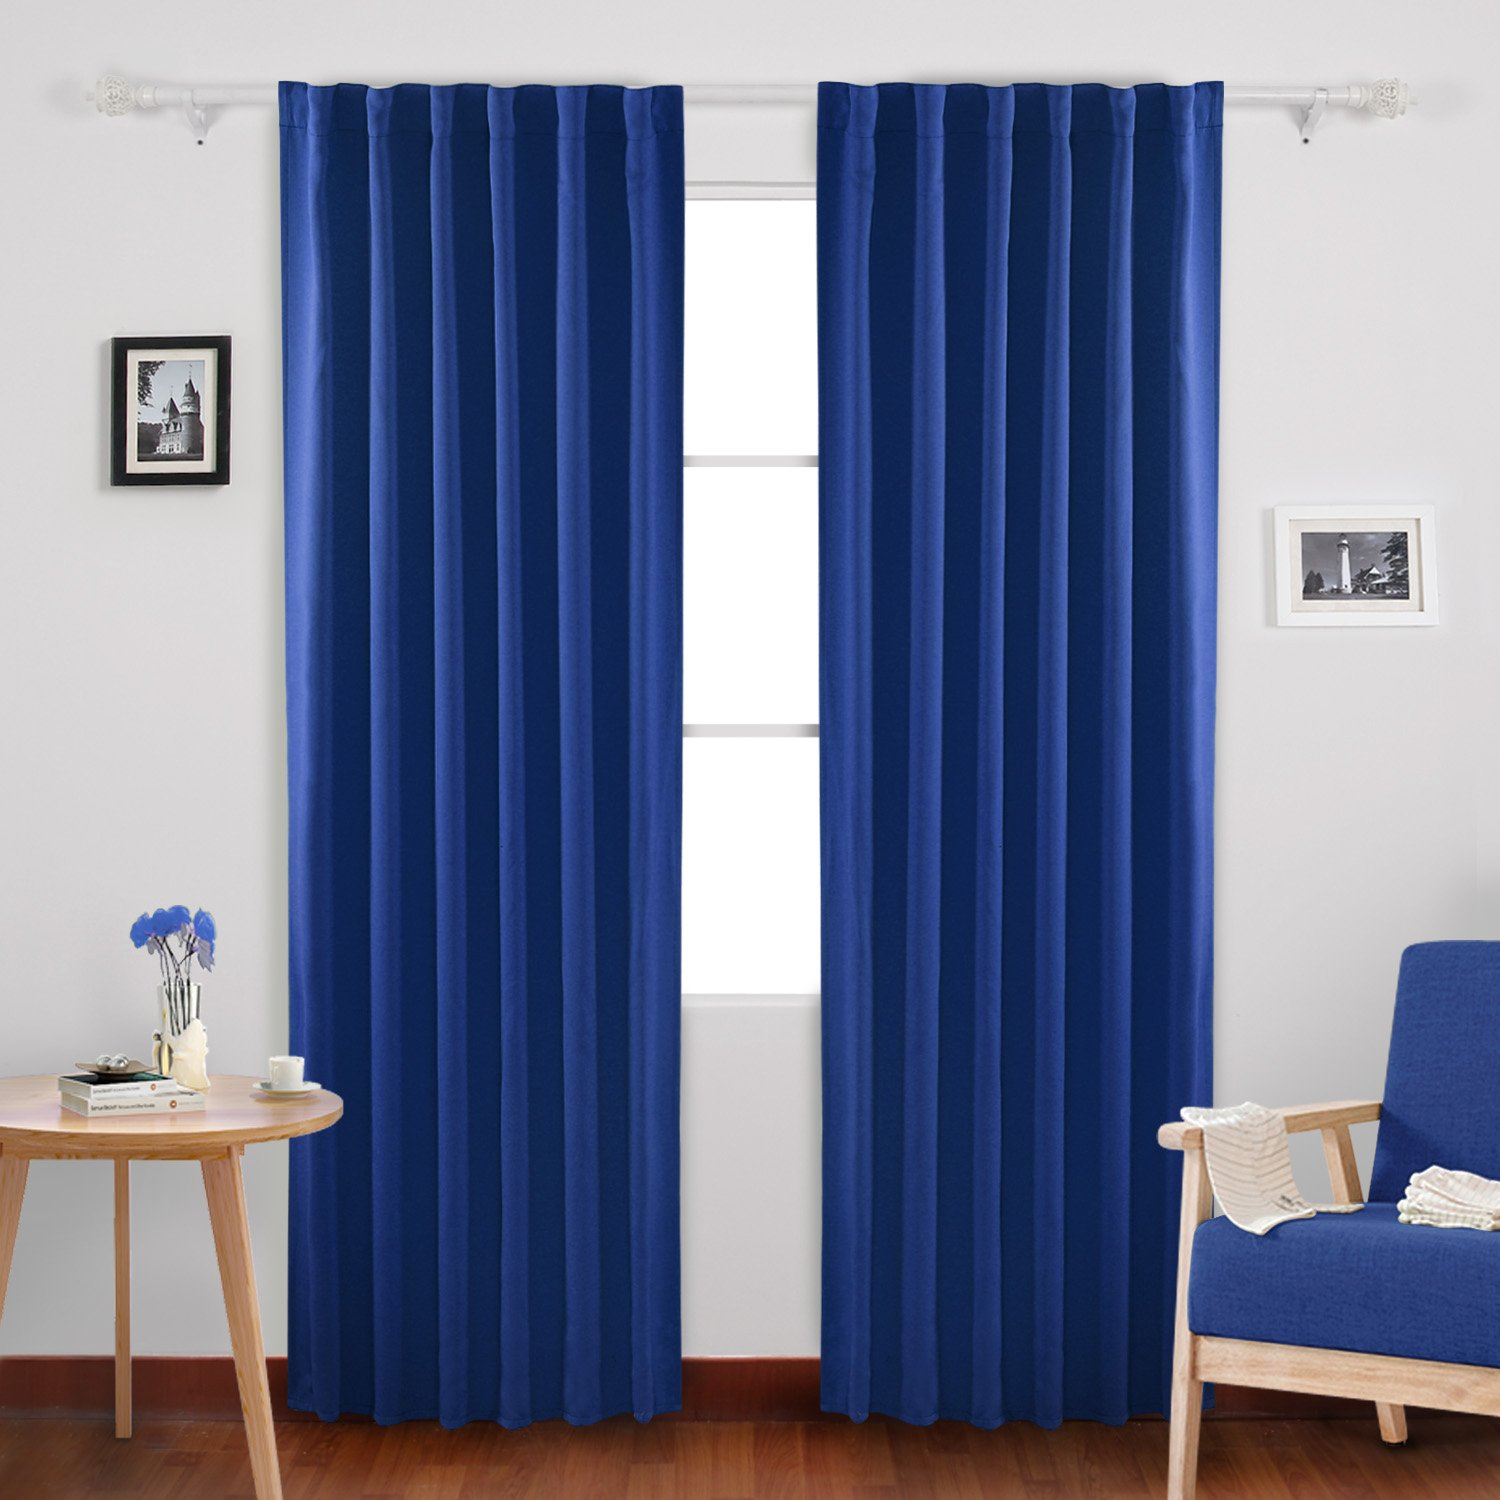 Deconovo Solid Rod Pocket Curtains Room Darkening Curtains Blackout Thermal Insulated Curtains for Living Room 52x84 Inch Royal Blue 1 Pair